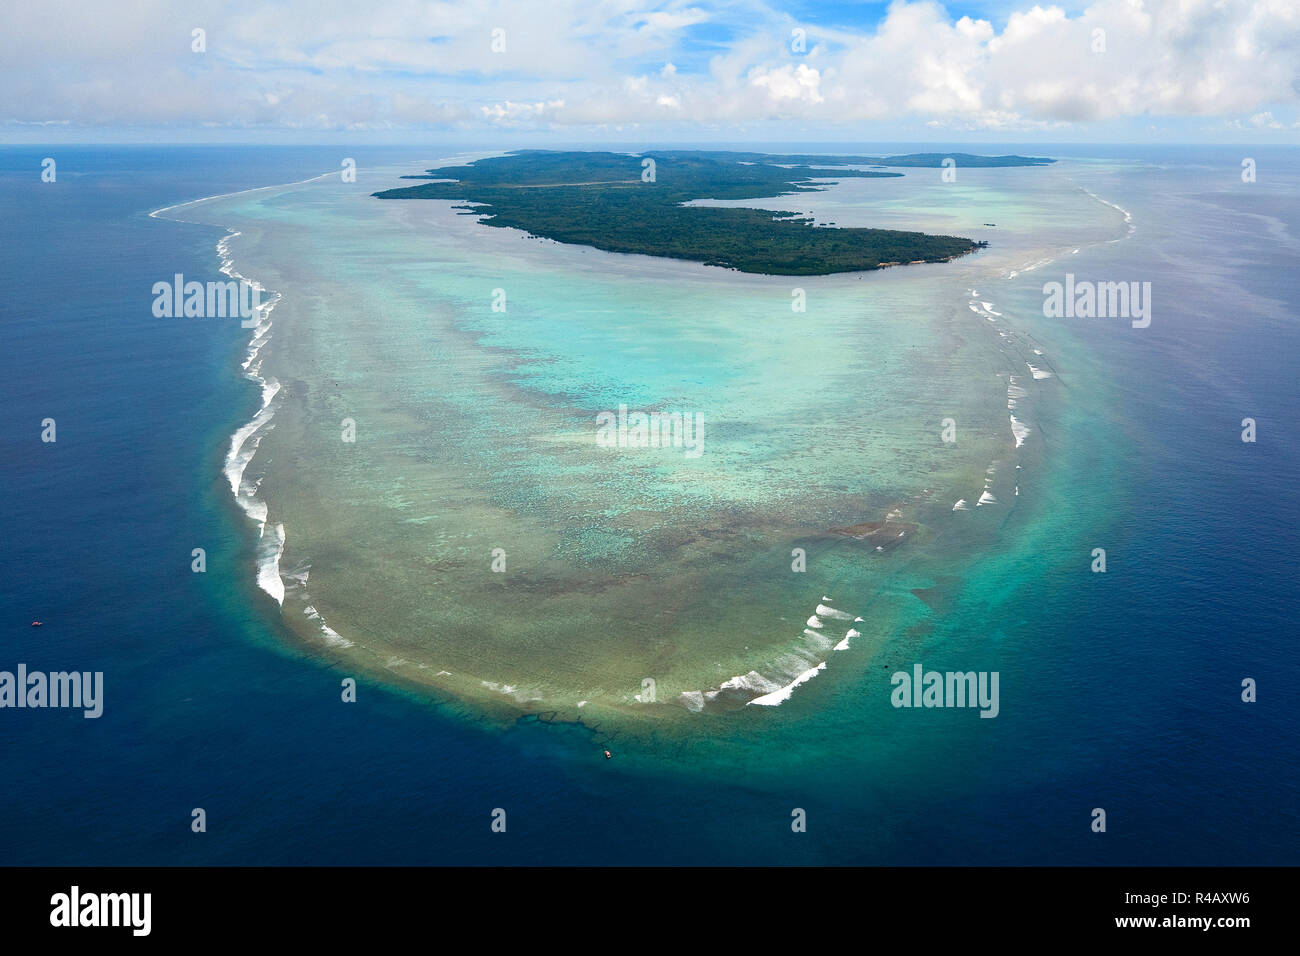 Yap Island, southern end, Yap, Caroline Islands, Federal States of Micronesia - Stock Image